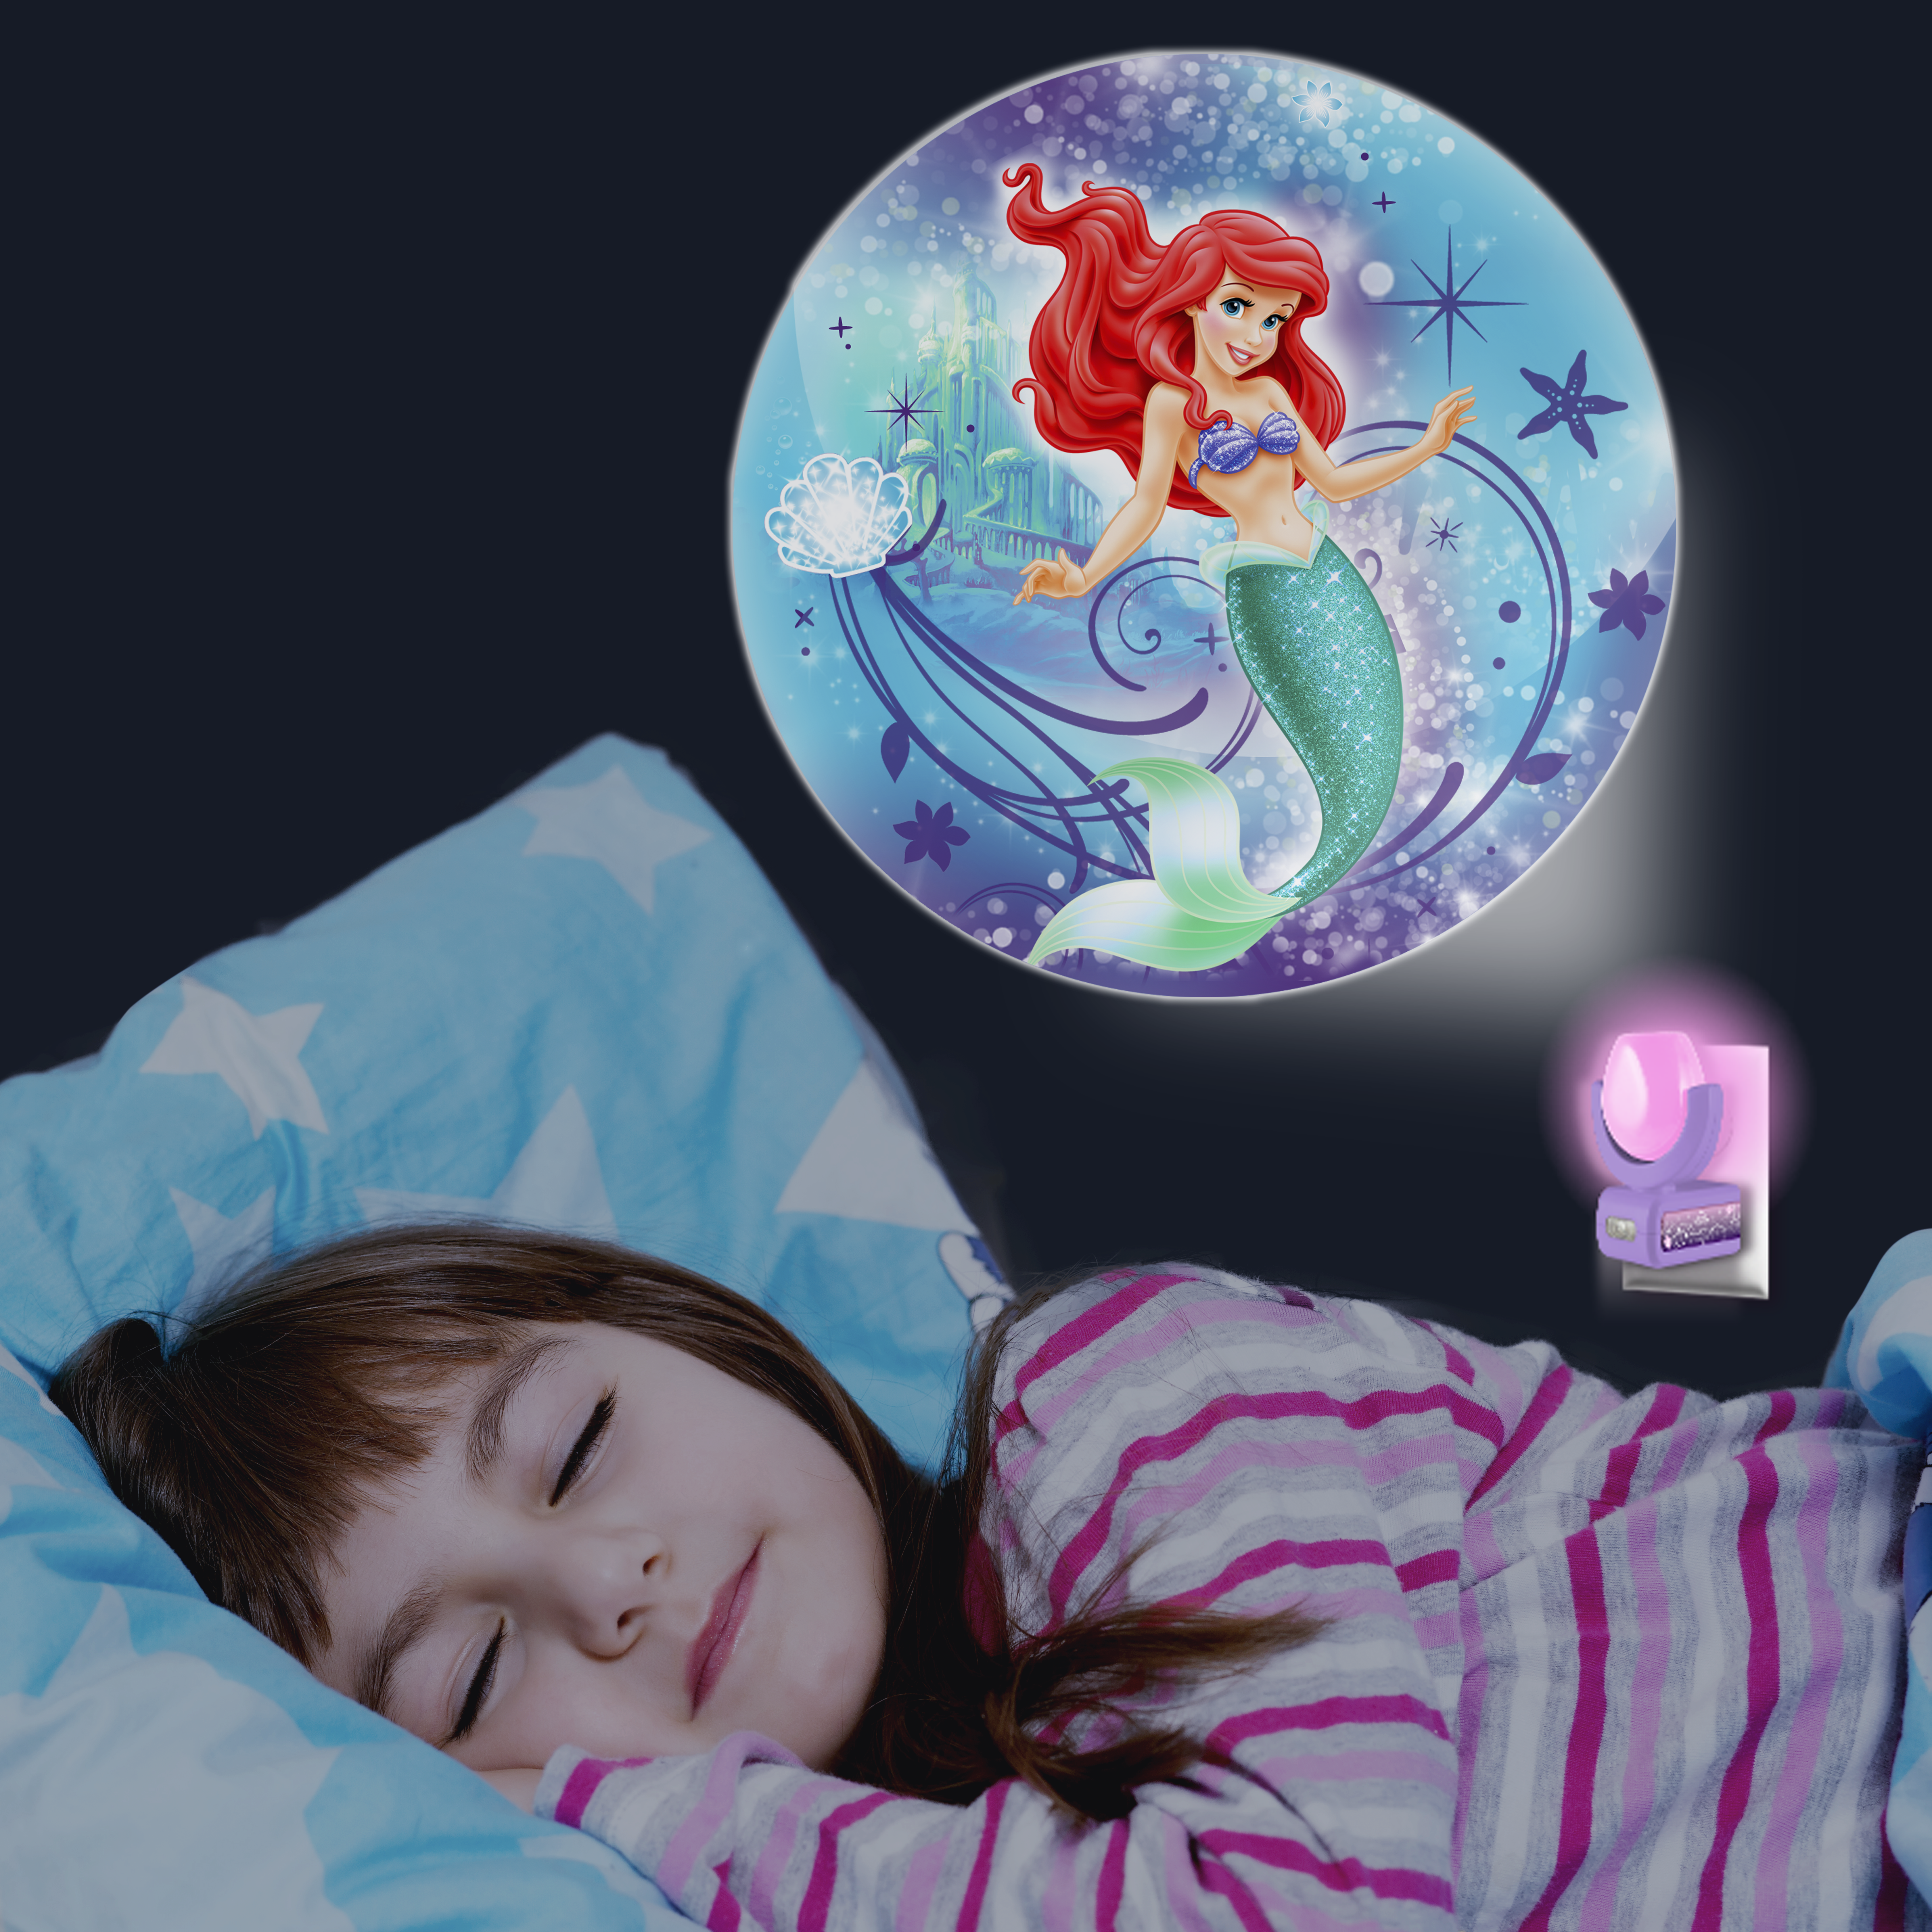 How to Avoid Bedtime Struggles with Projectables Night Lights and Cuddles